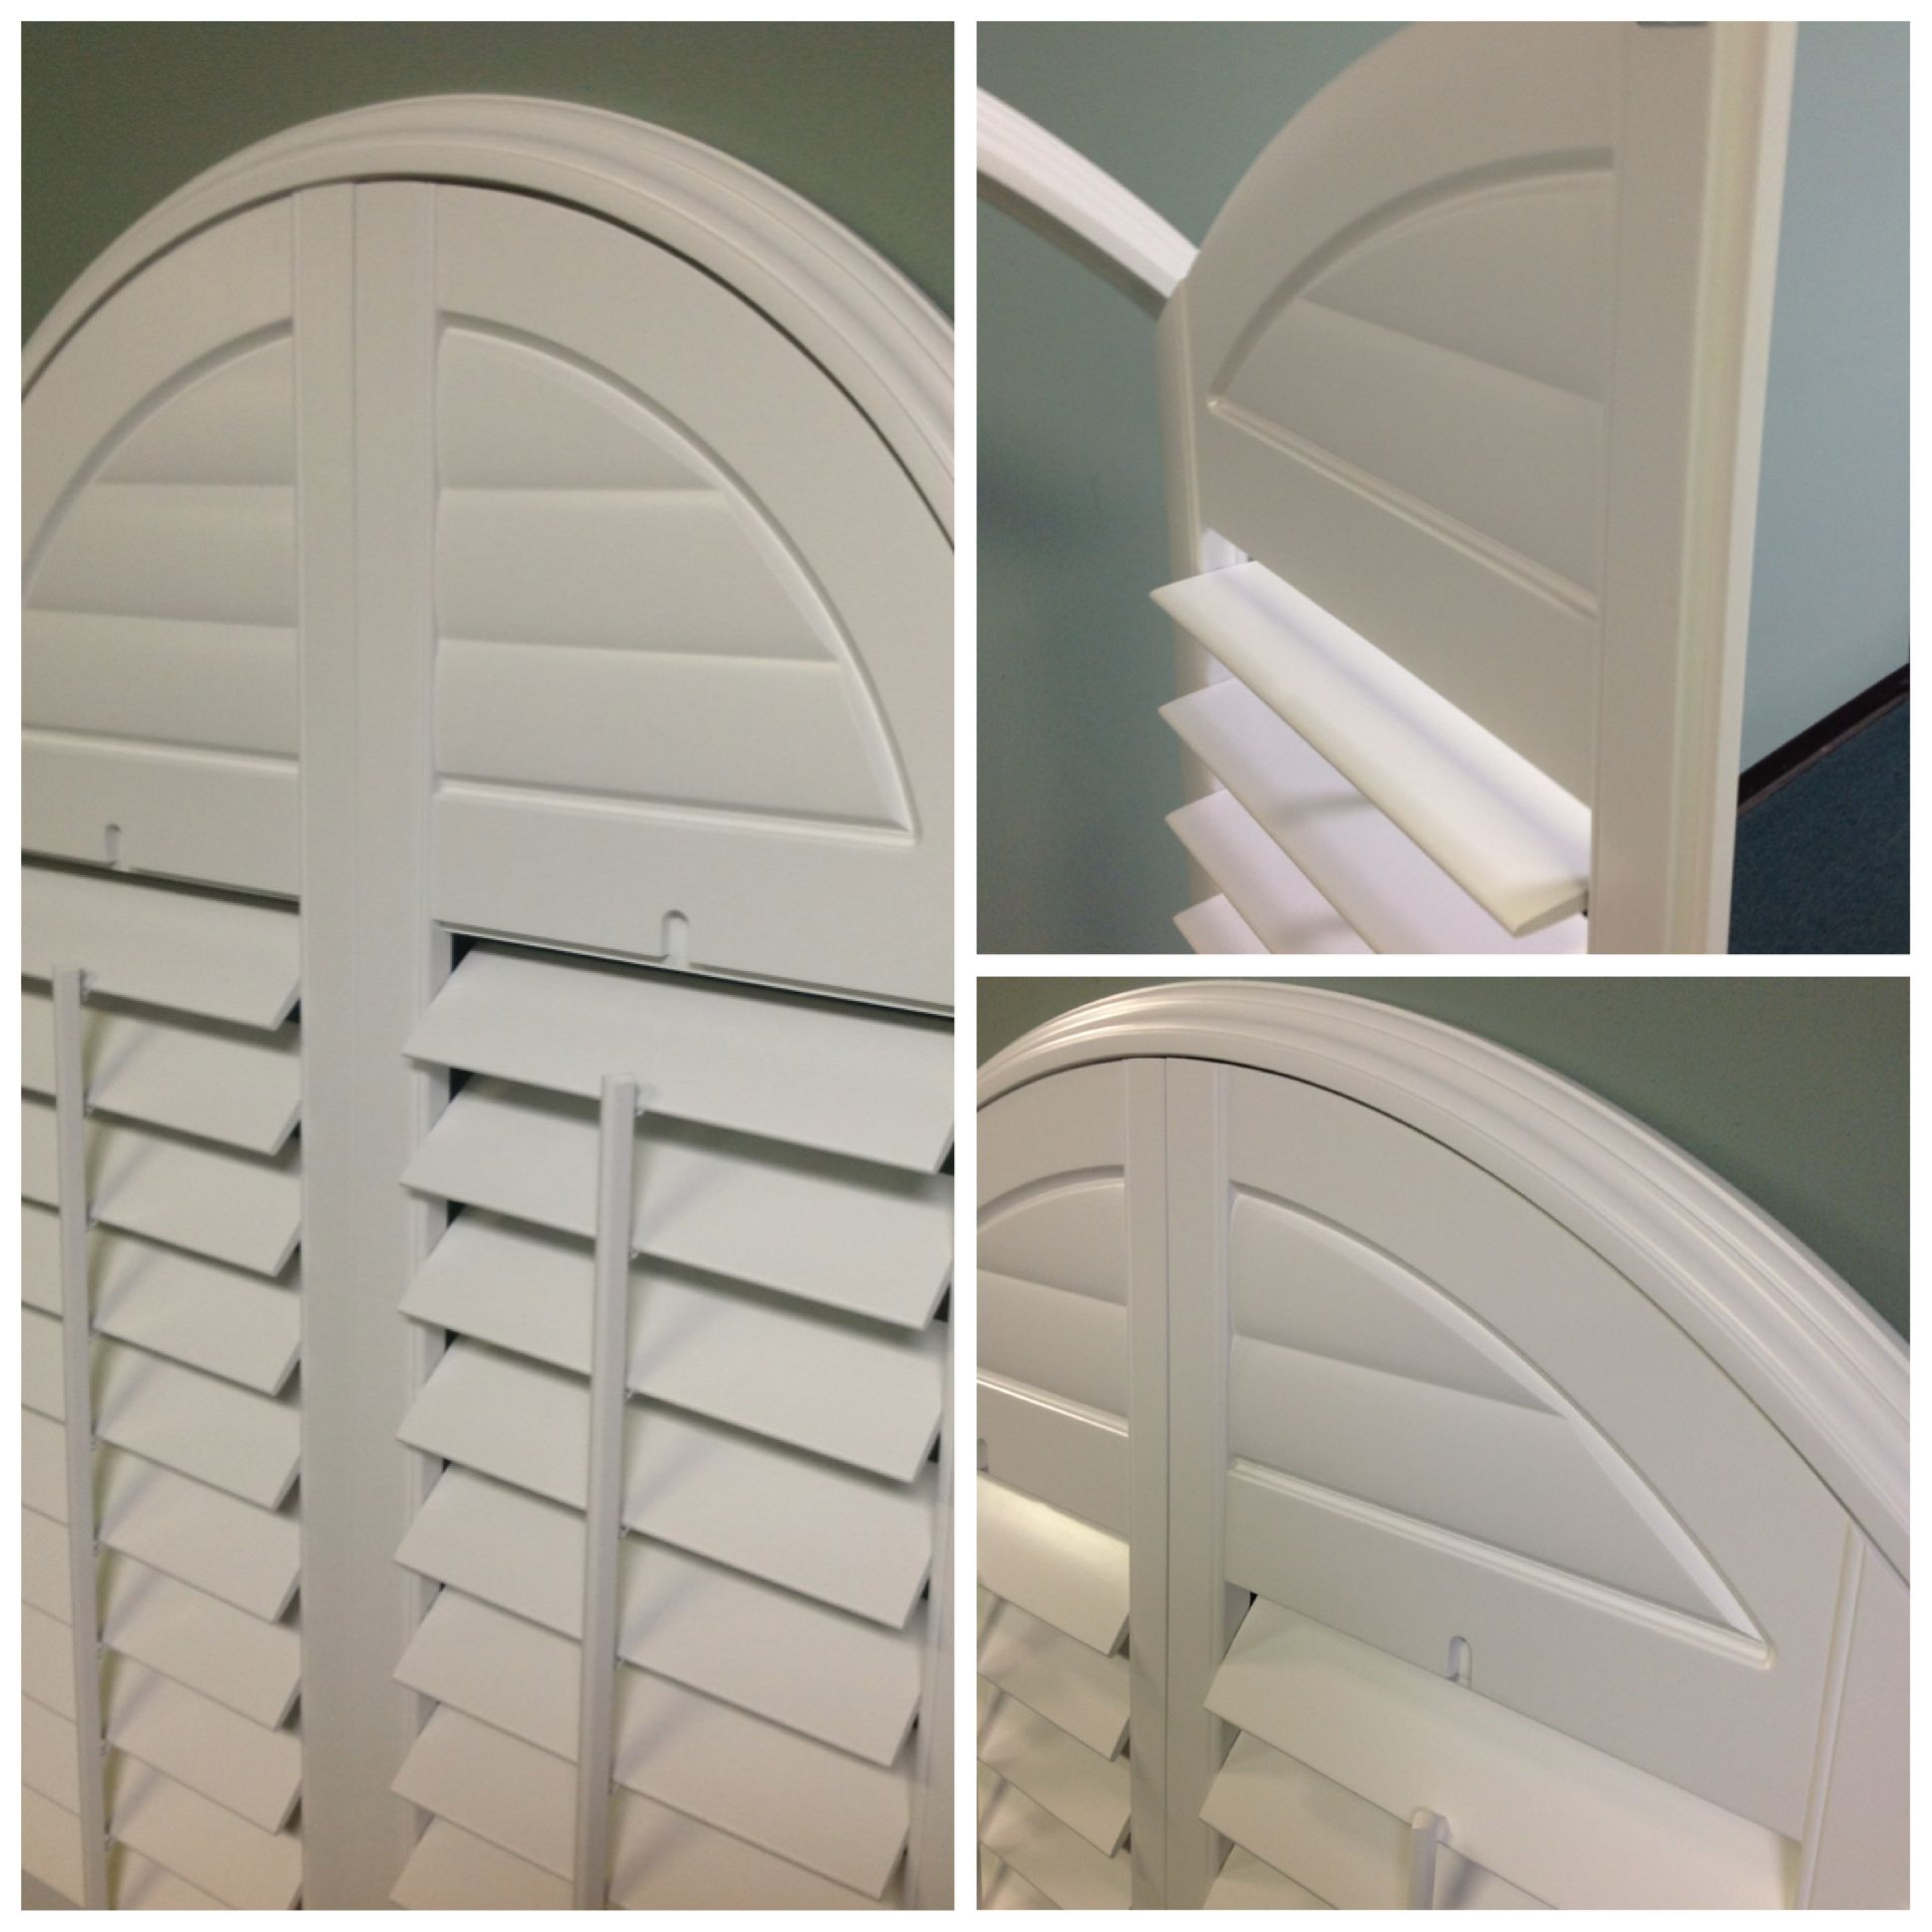 Fixed Arch Windows : New post oak arch series from rockwood shutters louvers